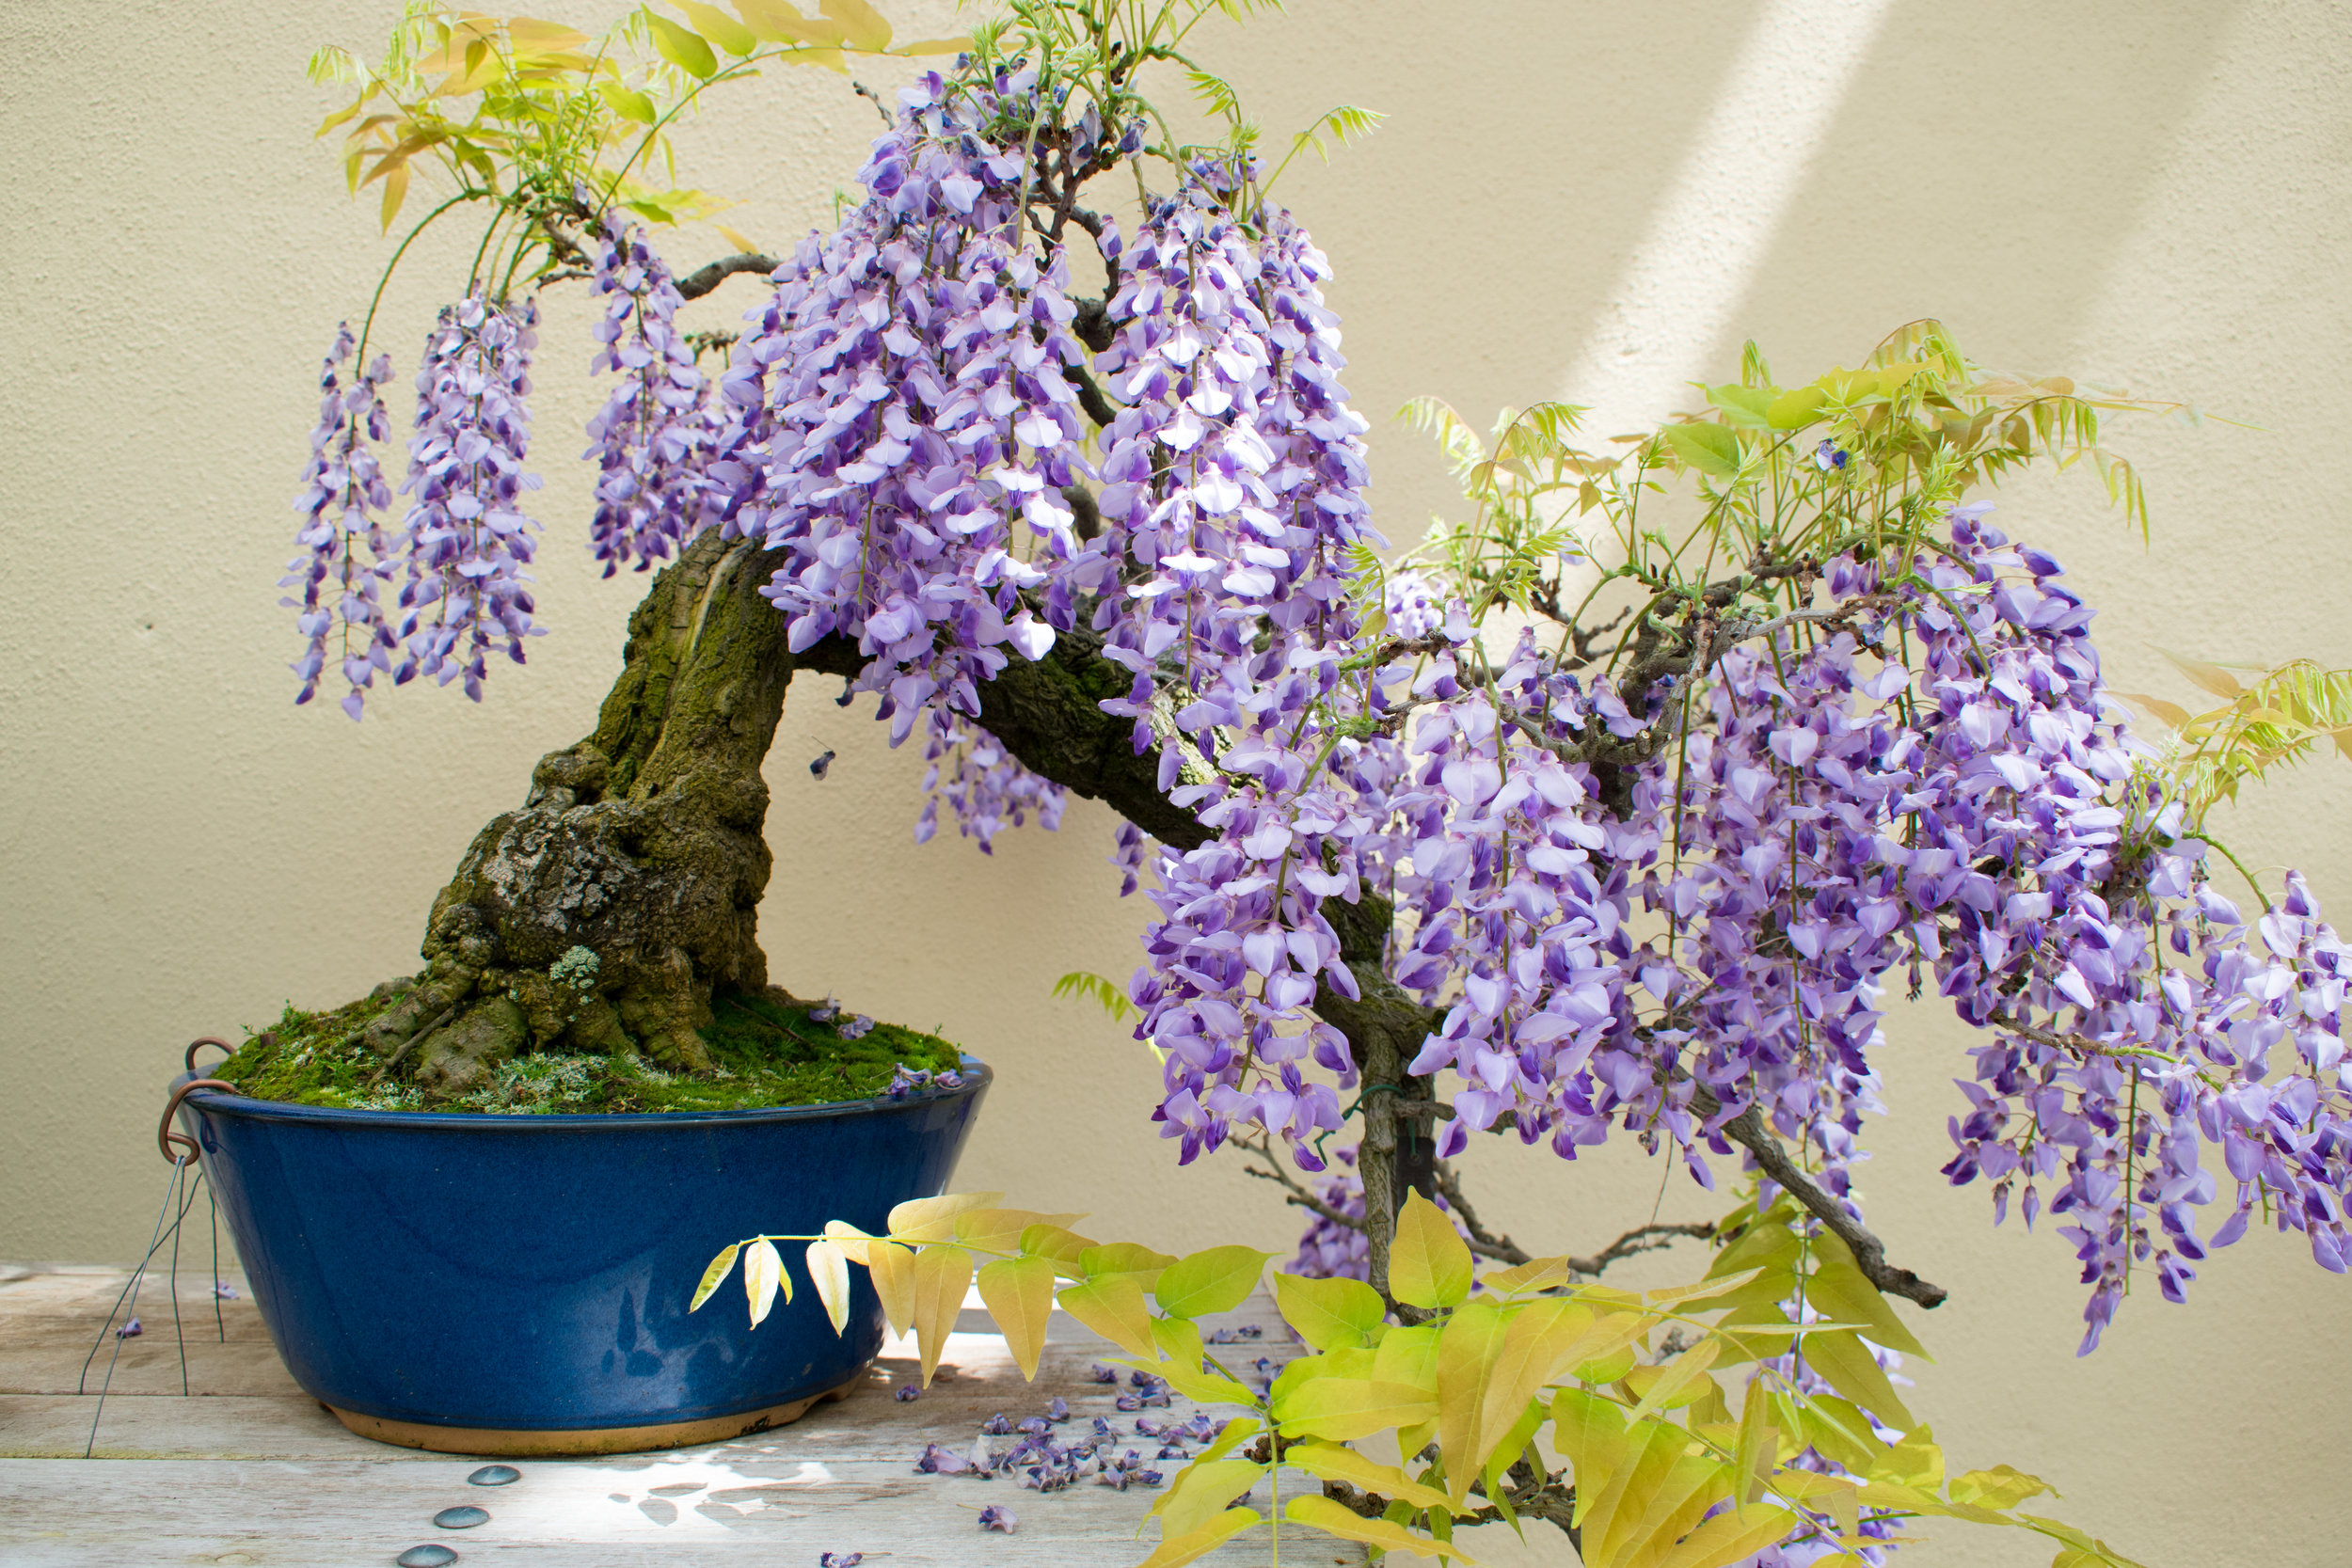 A Mininature Wisteria at The Brooklyn Botanical Garden, New York